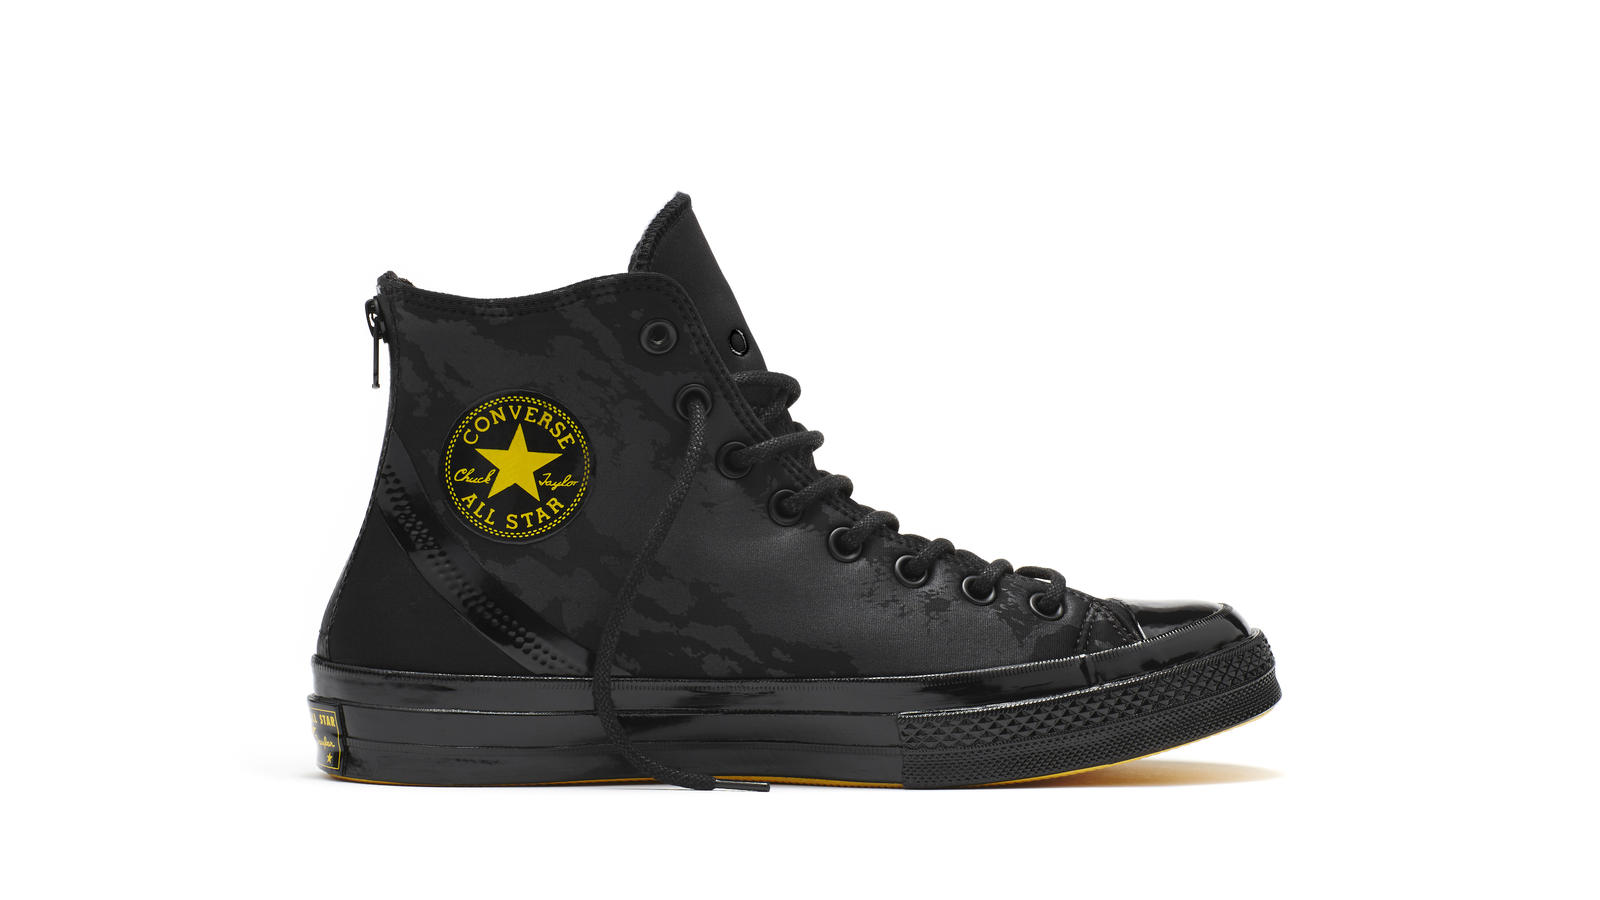 CONVERSE PRESENTS CHUCK TAYLOR ALL STAR '70 FIRST STRING